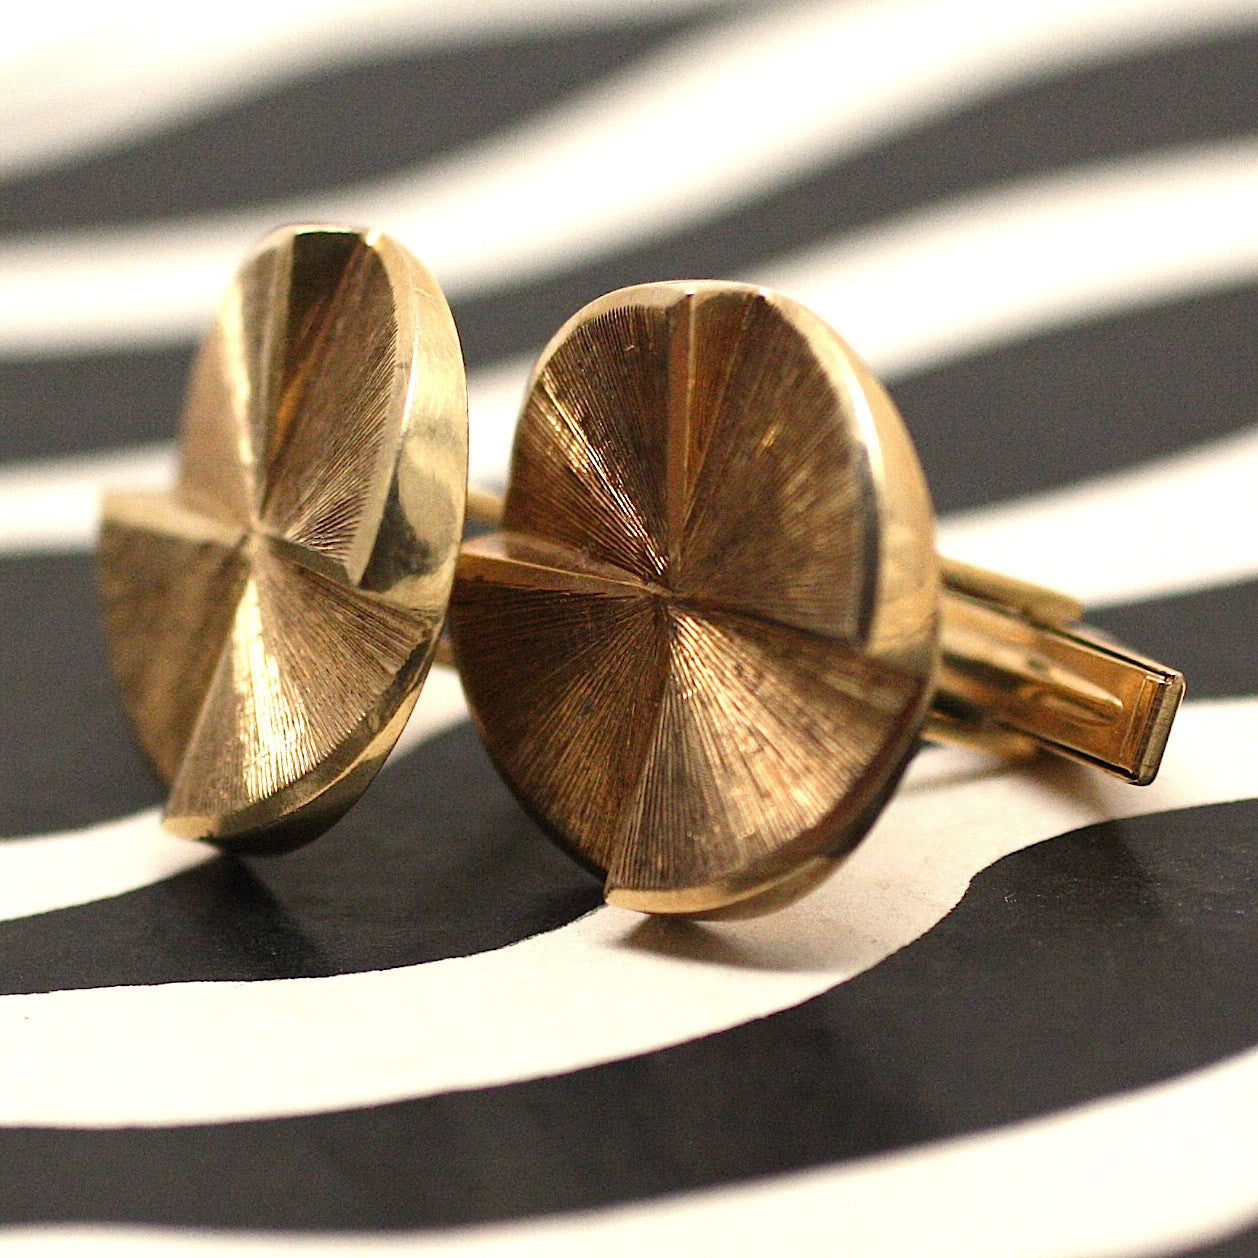 Mid Century 14k solid gold cufflinks with circular tops in perfect condition (3/4 profile view) | Pippin Vintage Jewelry